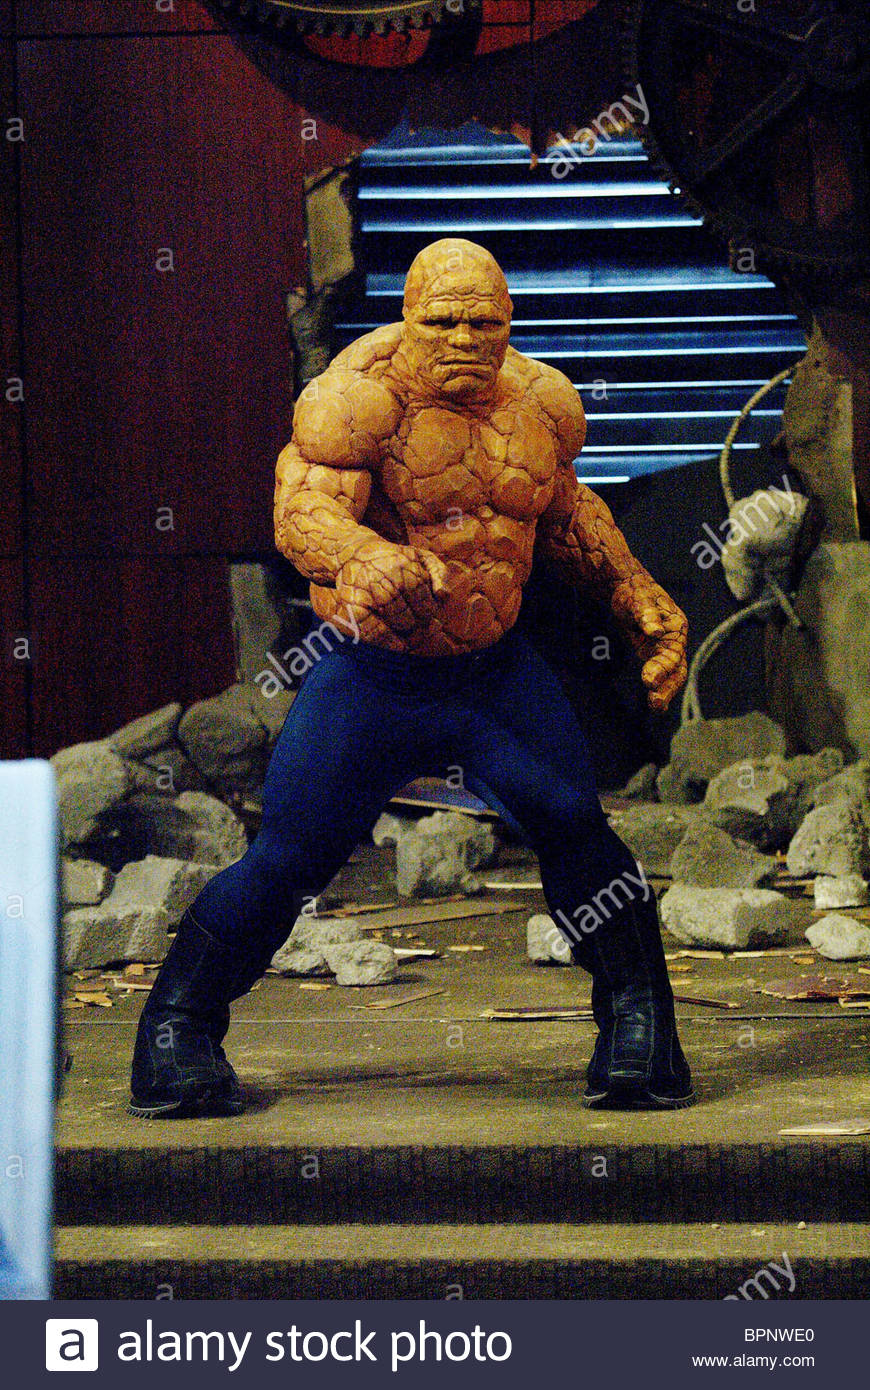 Fantastic Four 2005 Ganzer Film Deutsch